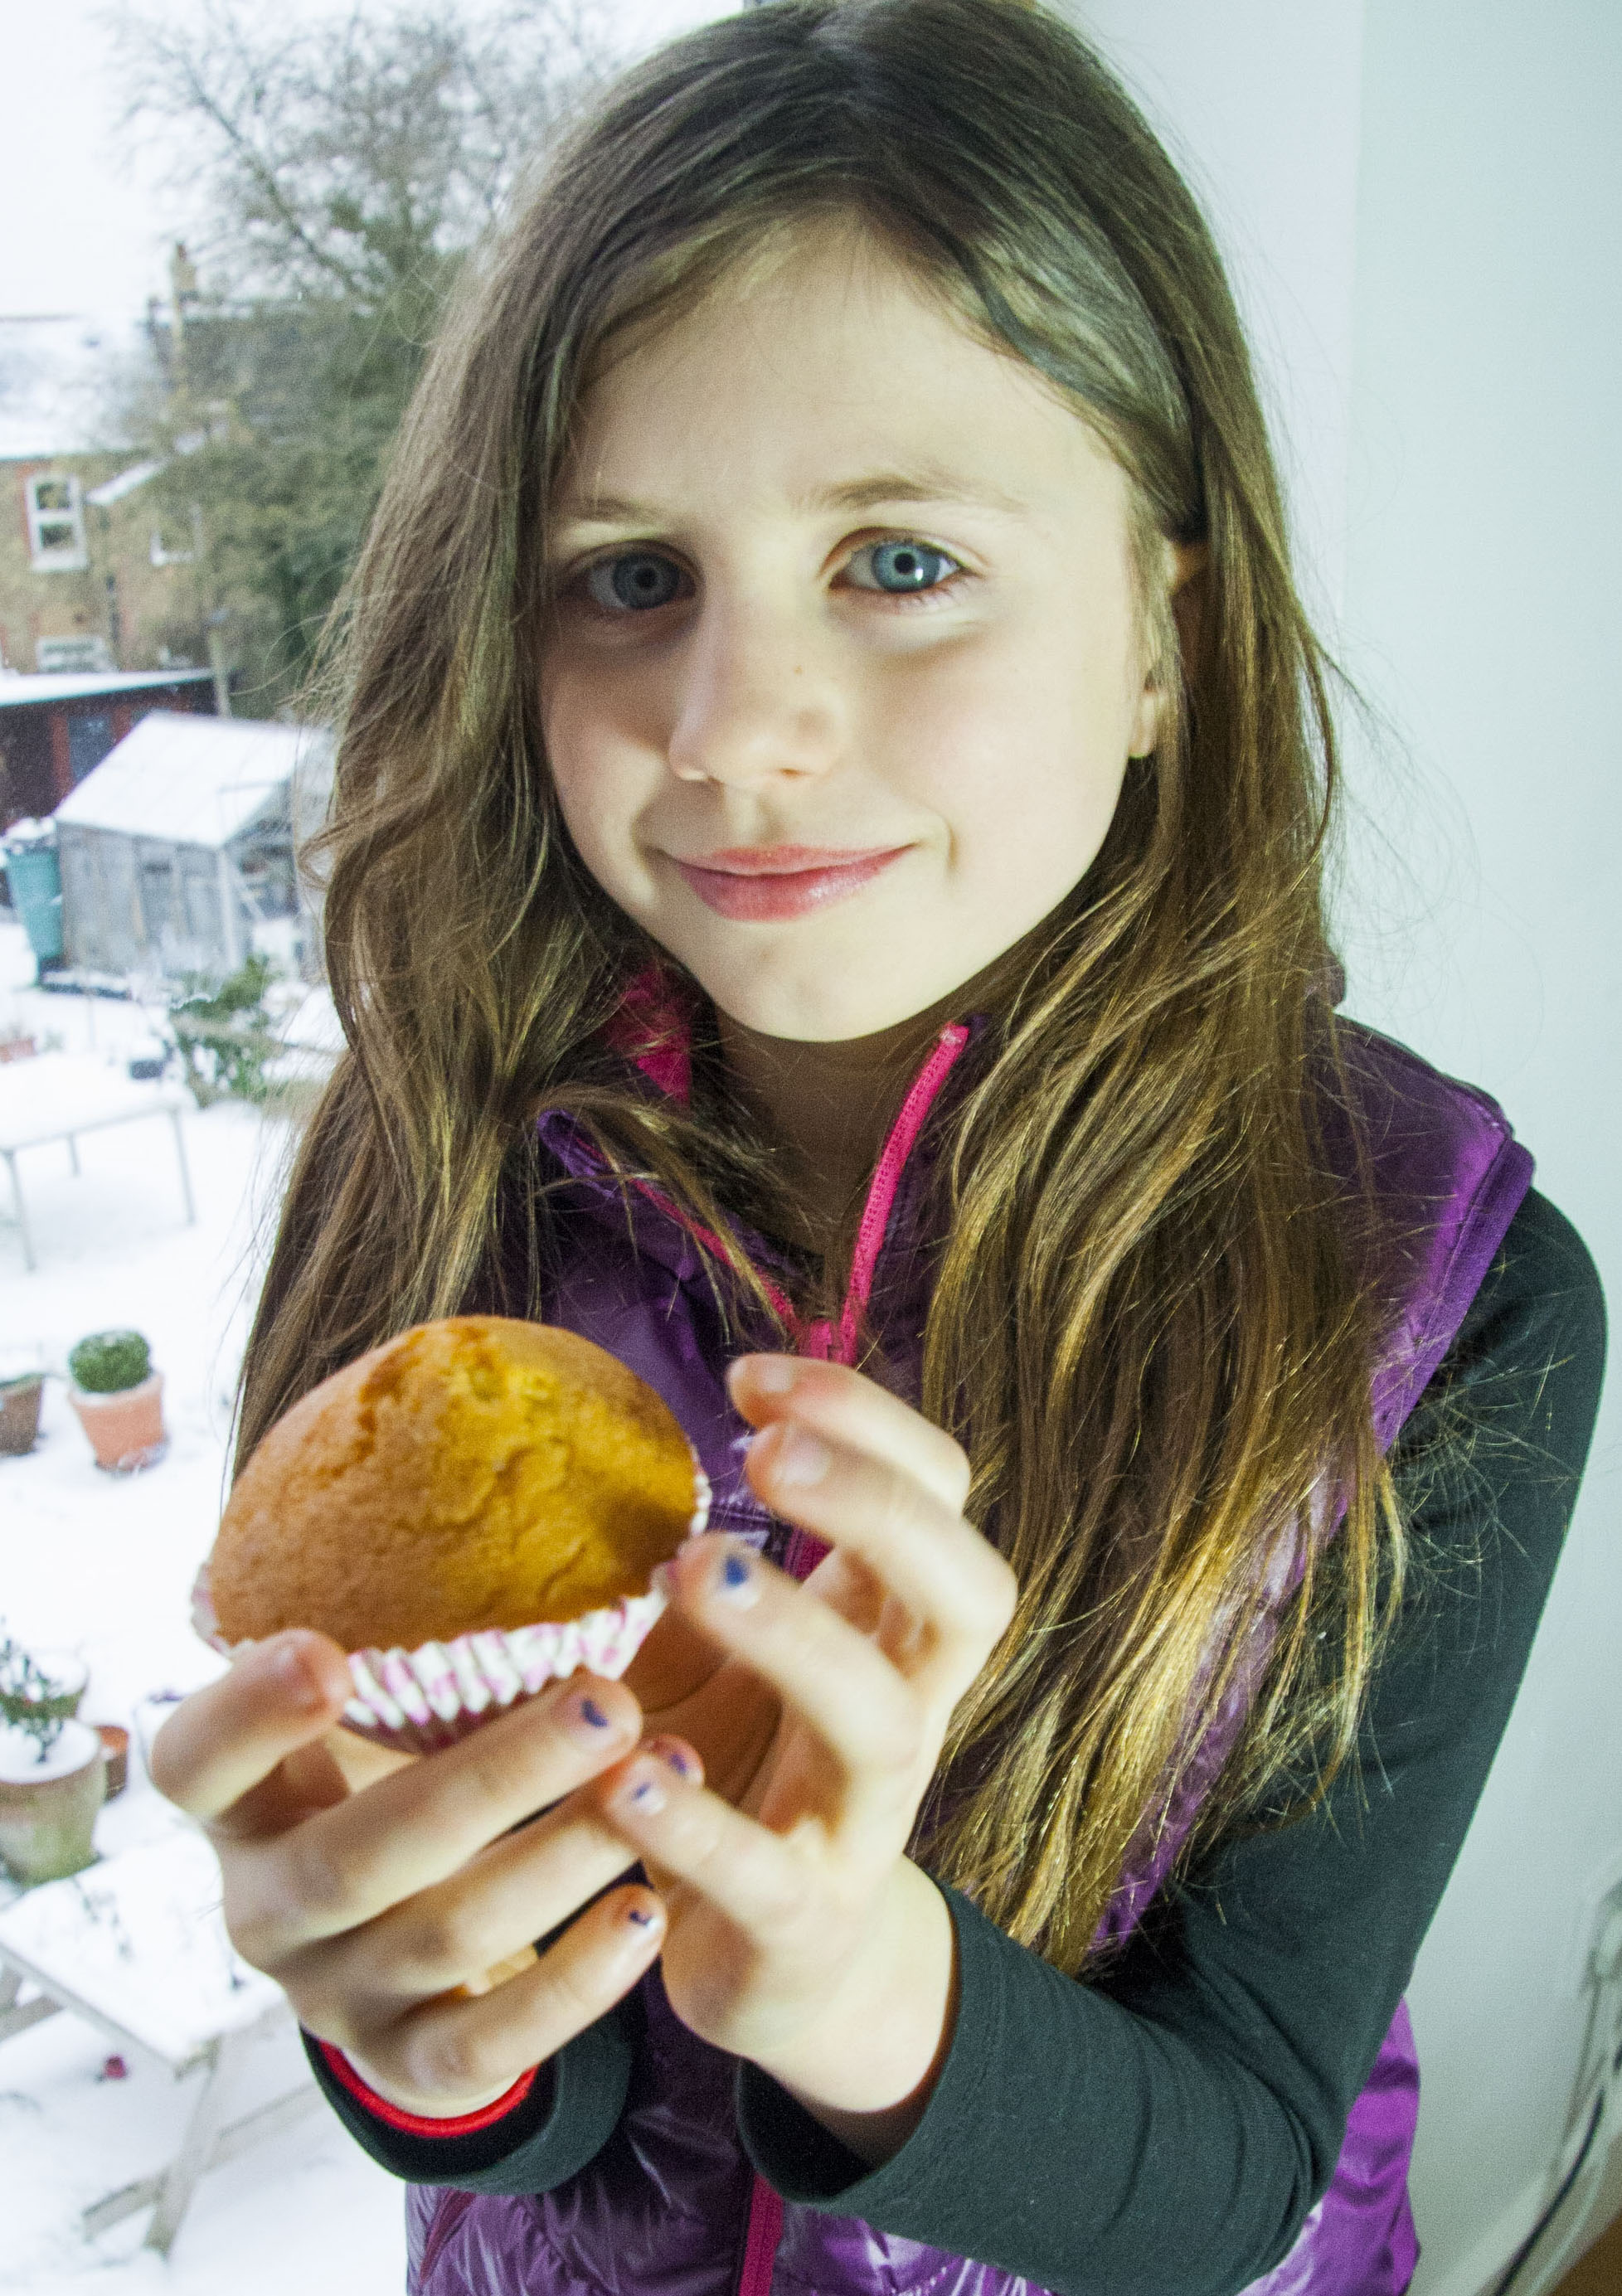 A Dose of Cake – a desensitisation therapy for an egg allergy